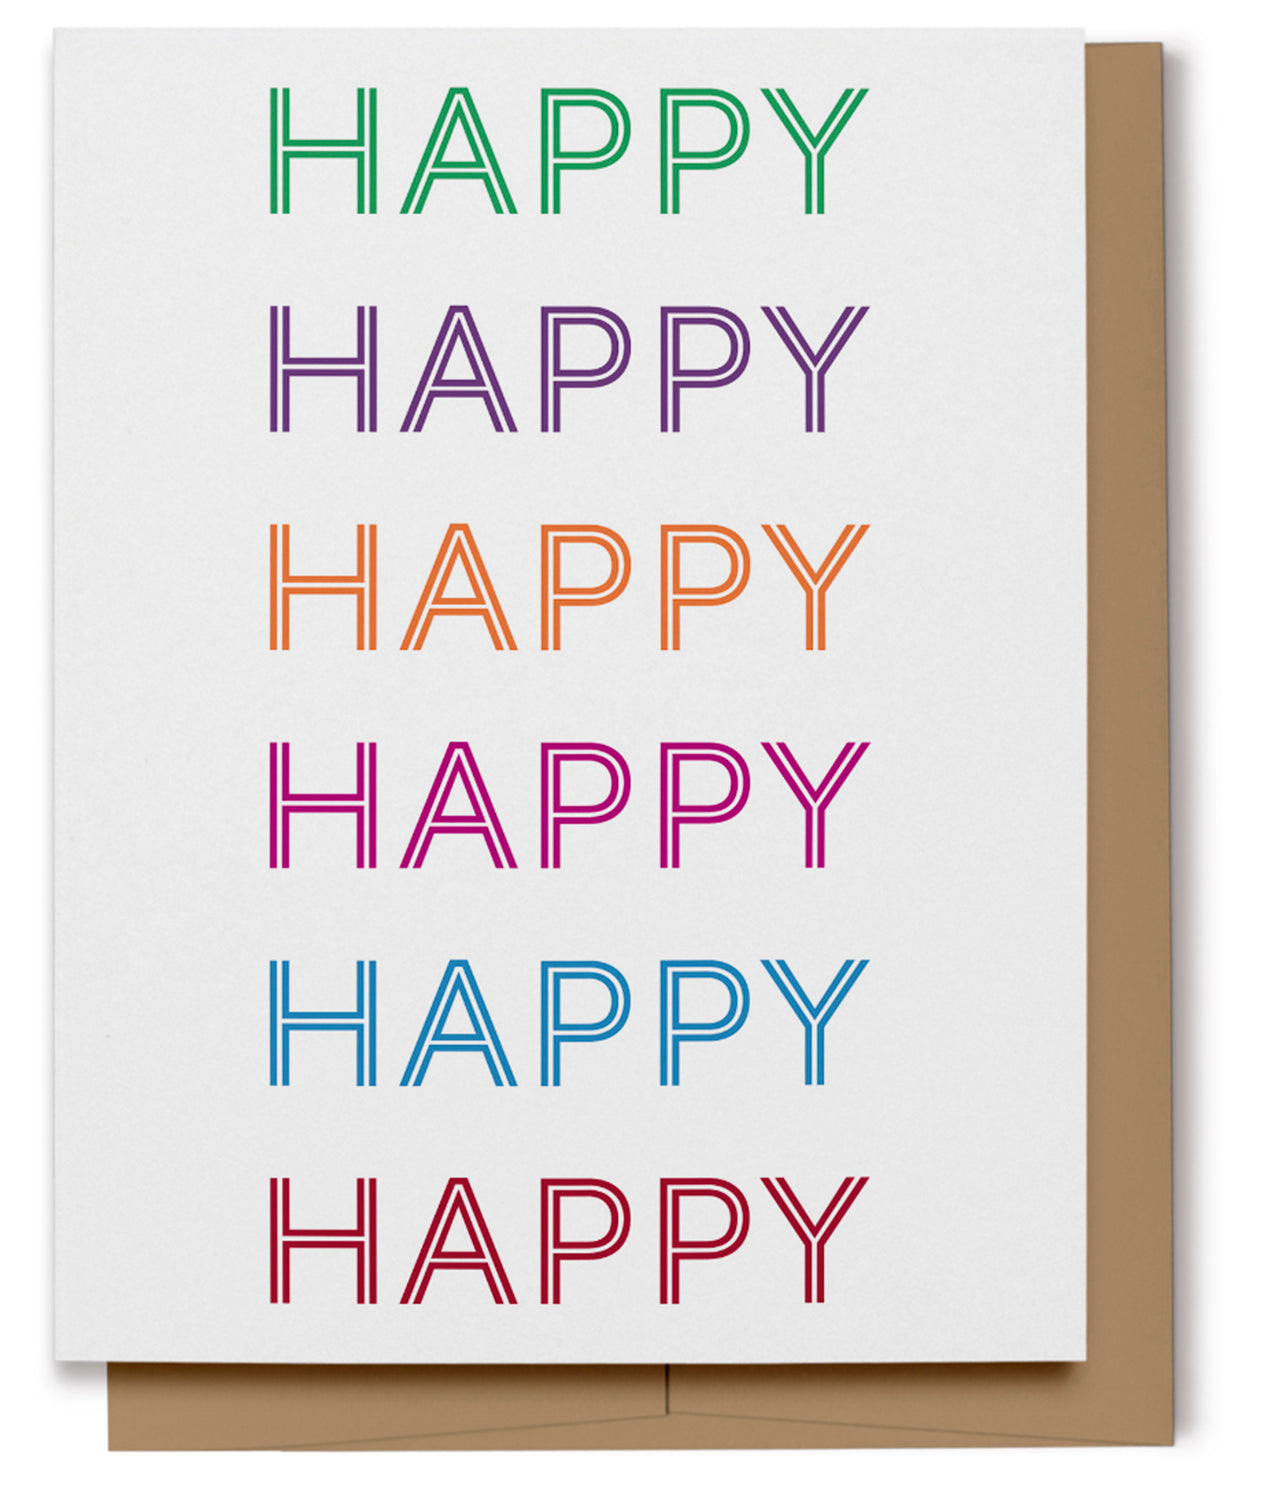 Happy, Happy, Happy Card (100% Recycled)